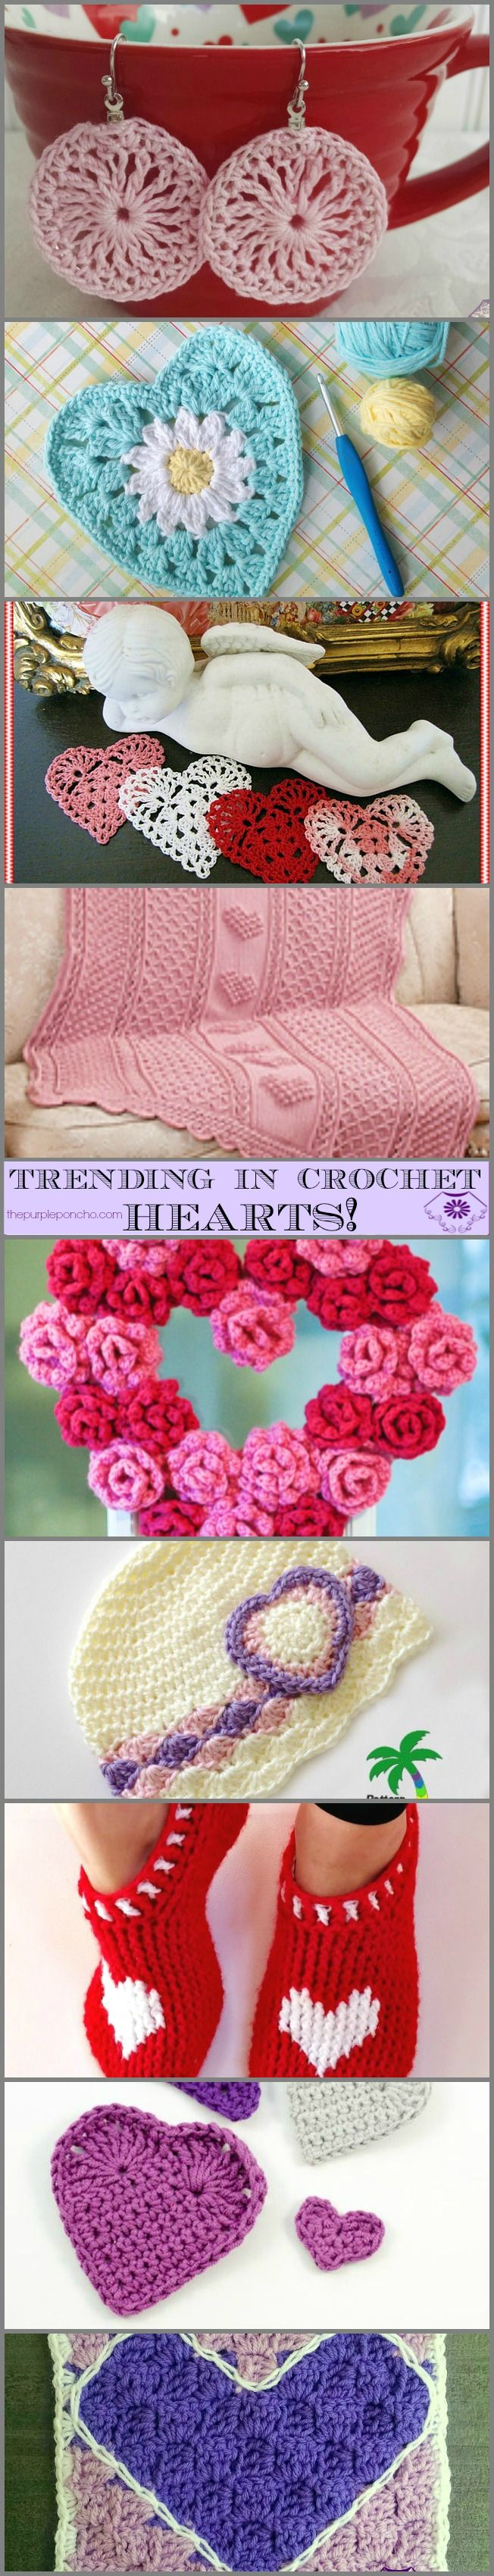 Trending In Crochet – Hearts! on The Purple Poncho! All are Free Crochet Patterns for jewelry, home decor, appliques, and accessories! Great for Valentine's Day.